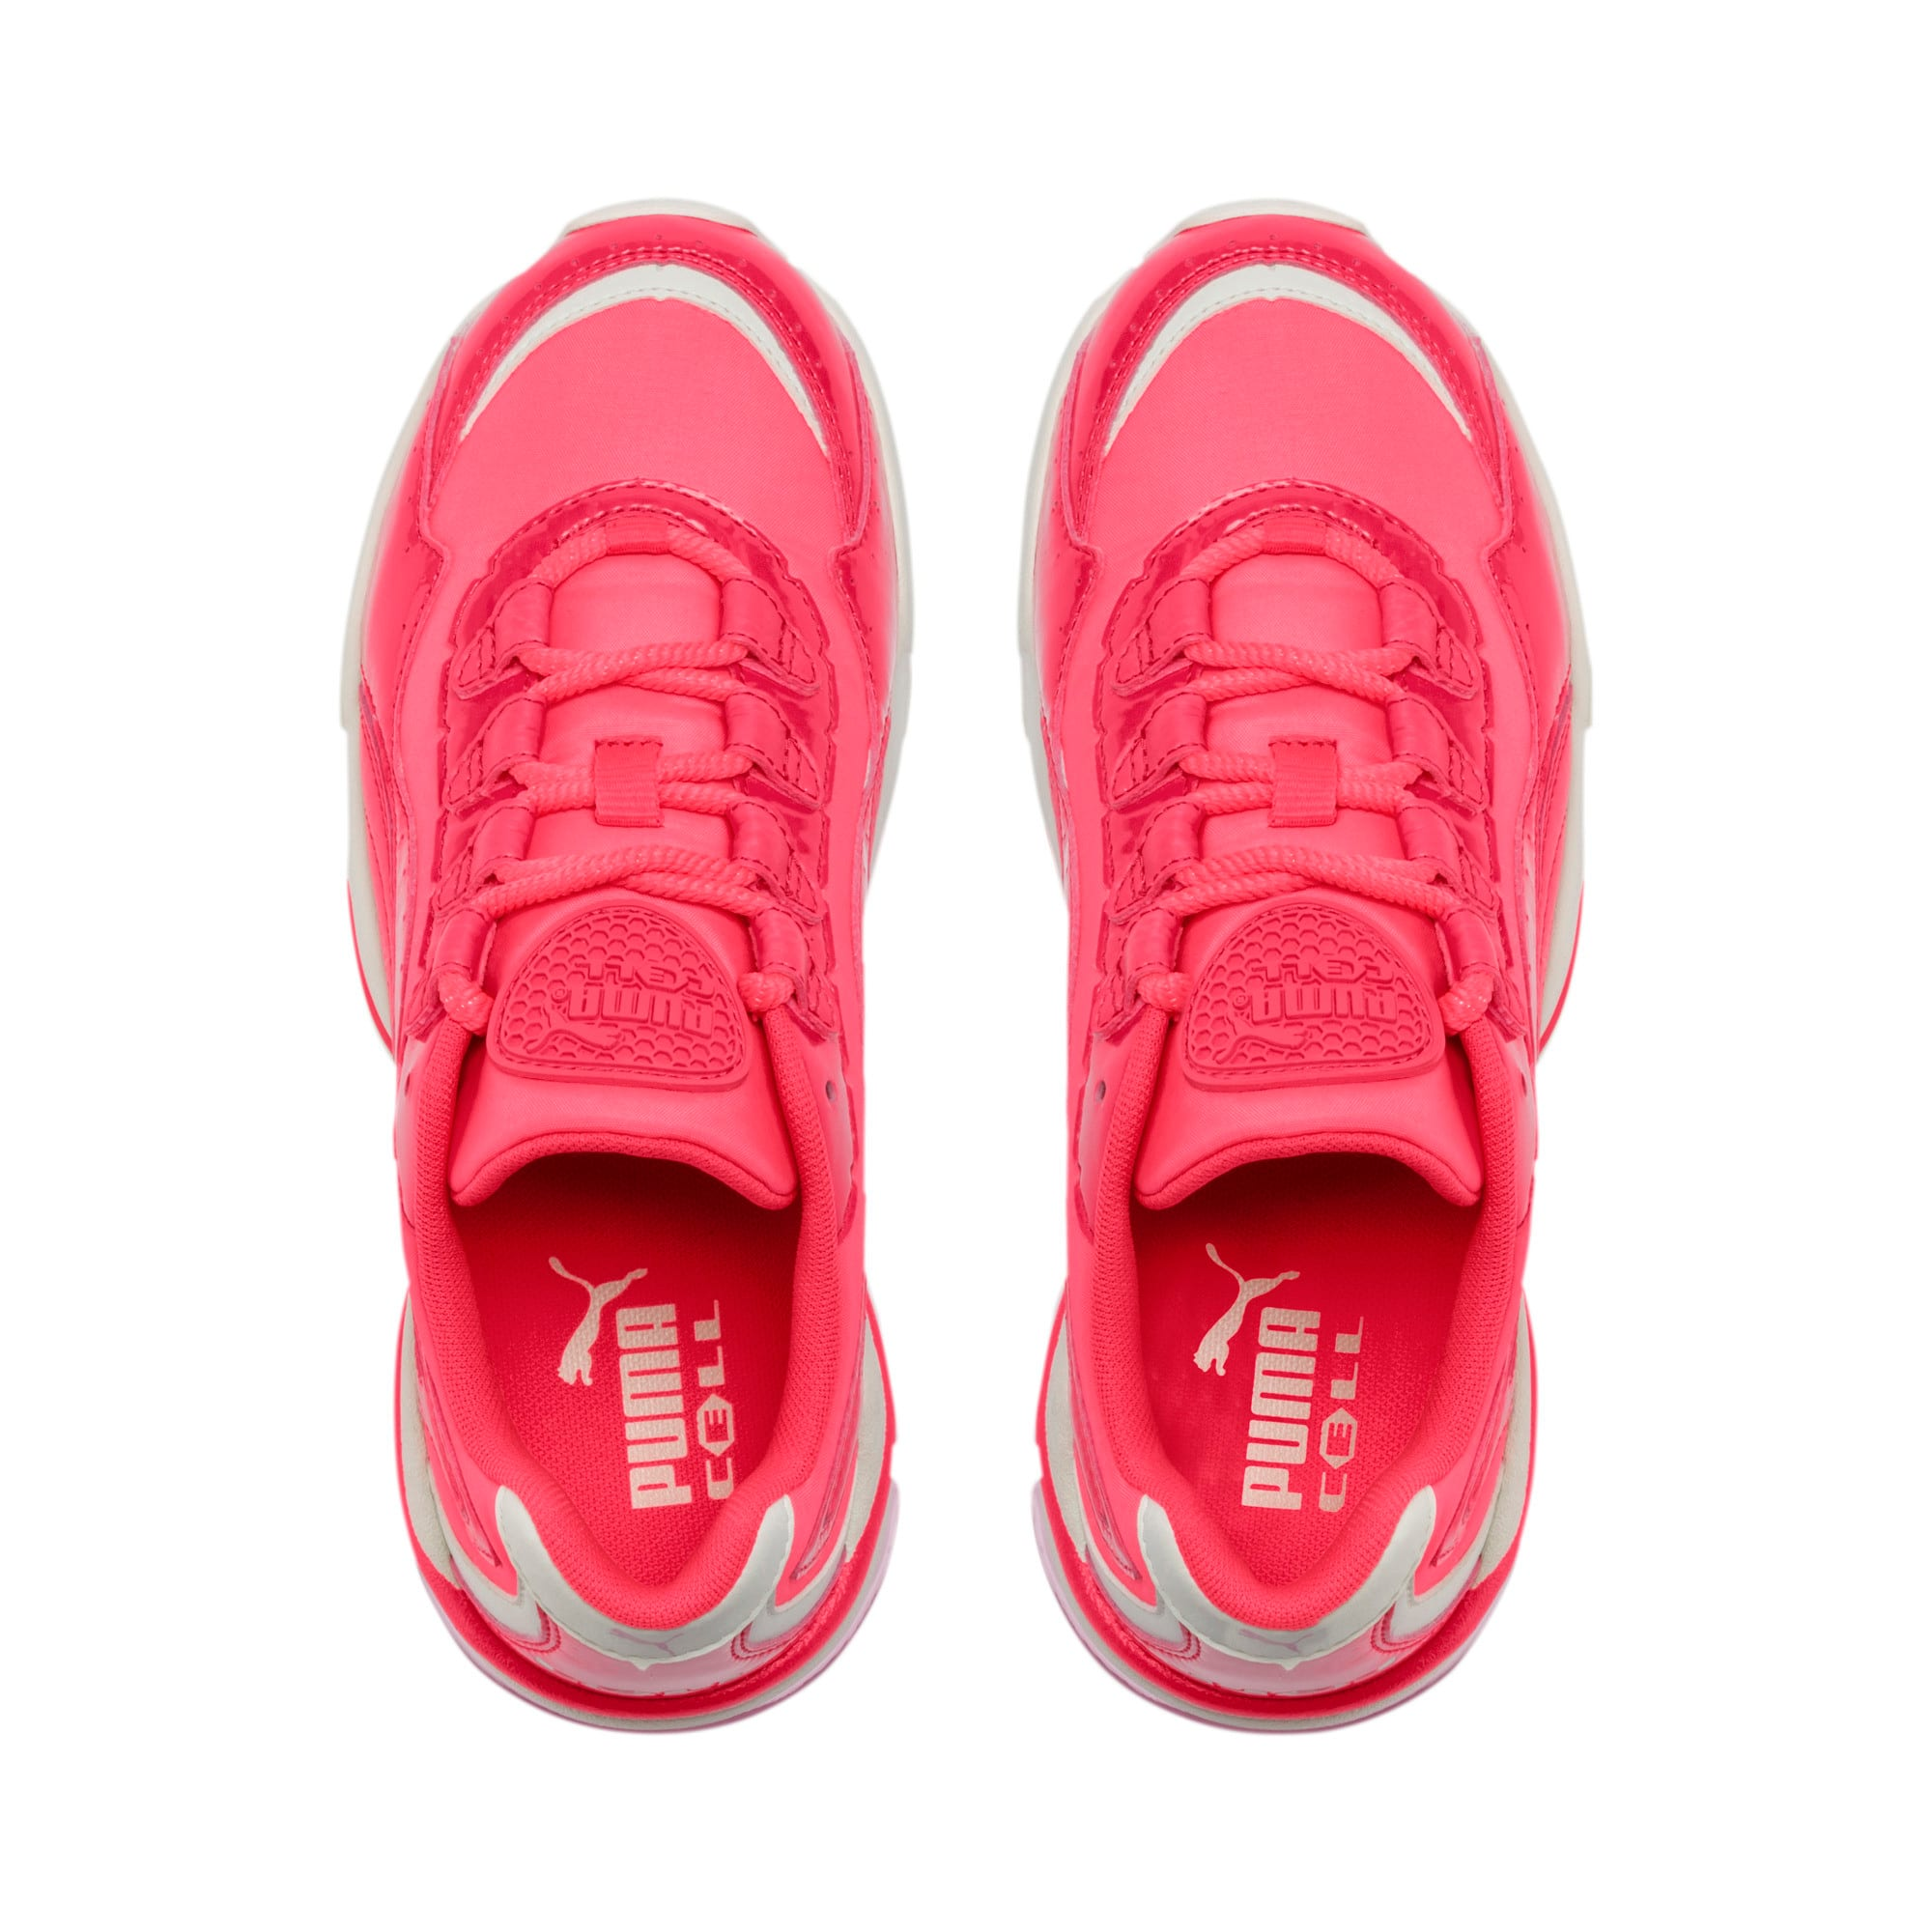 Thumbnail 7 of CELL Stellar Neon Women's Sneakers, Pink Alert-Heather, medium